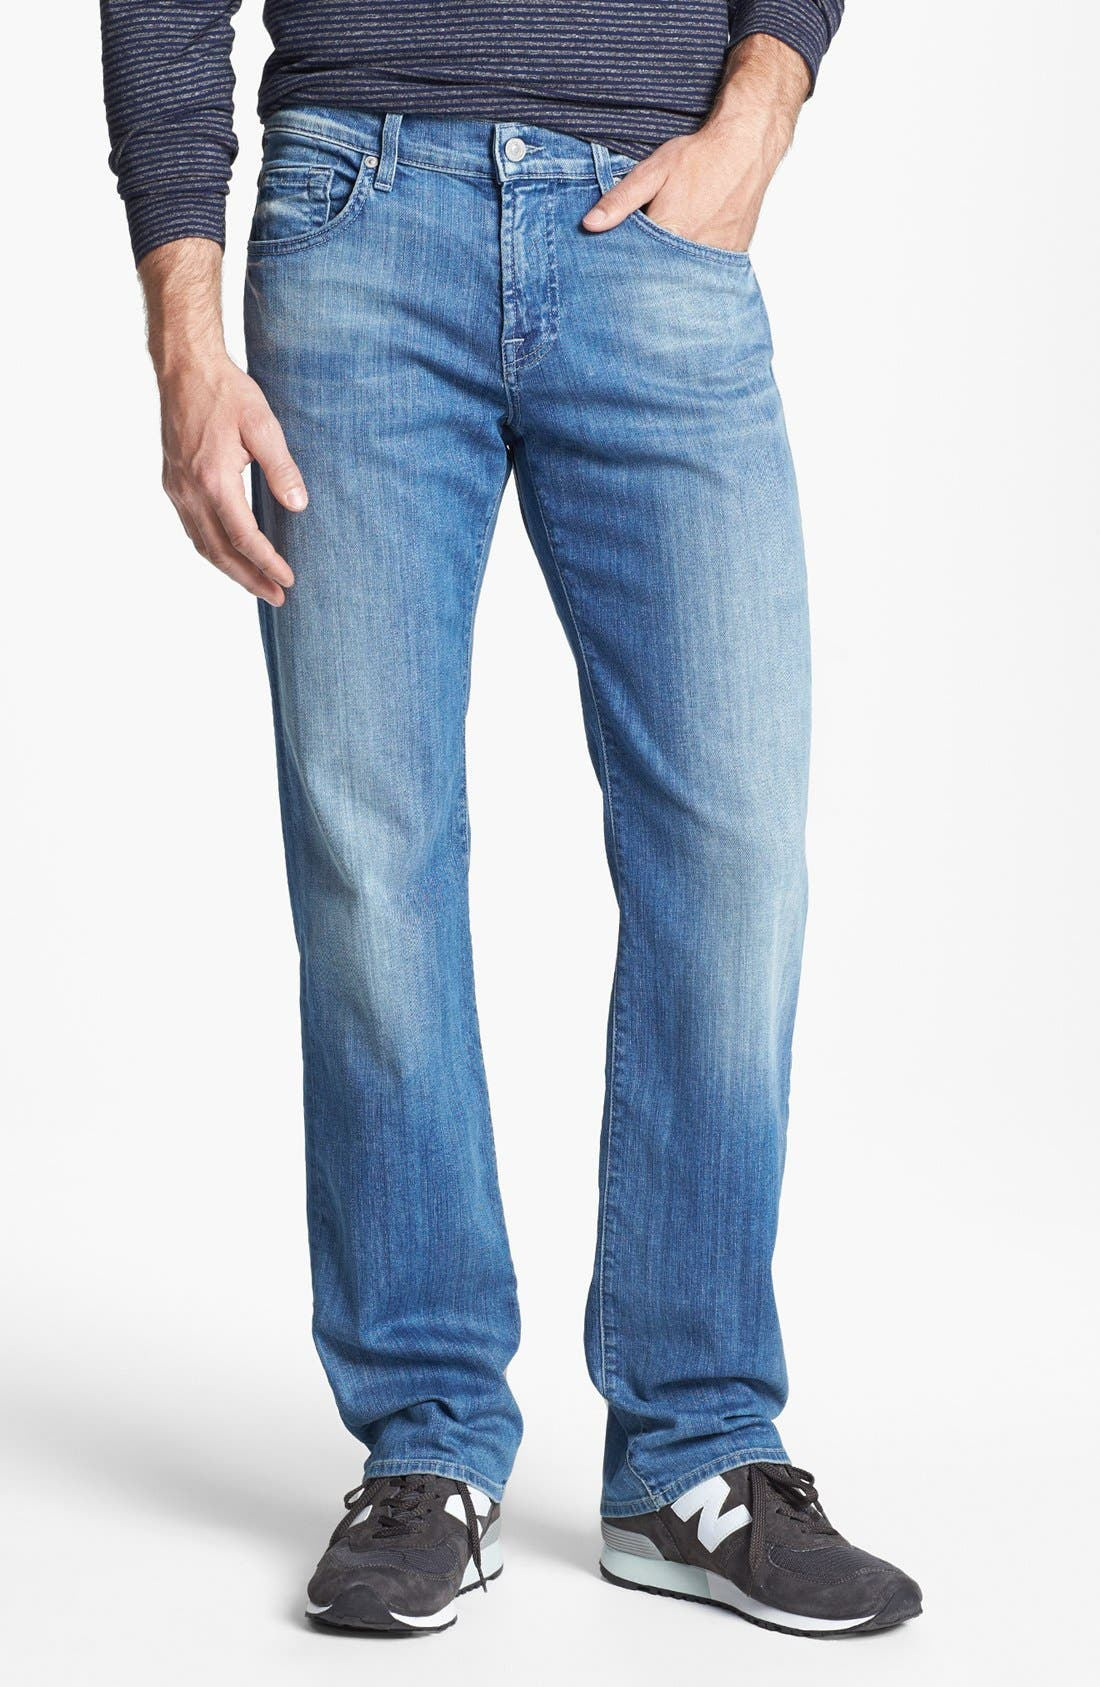 Alternate Image 1 Selected - 7 For All Mankind® 'Austyn' Relaxed Fit Jeans (Washed Out)